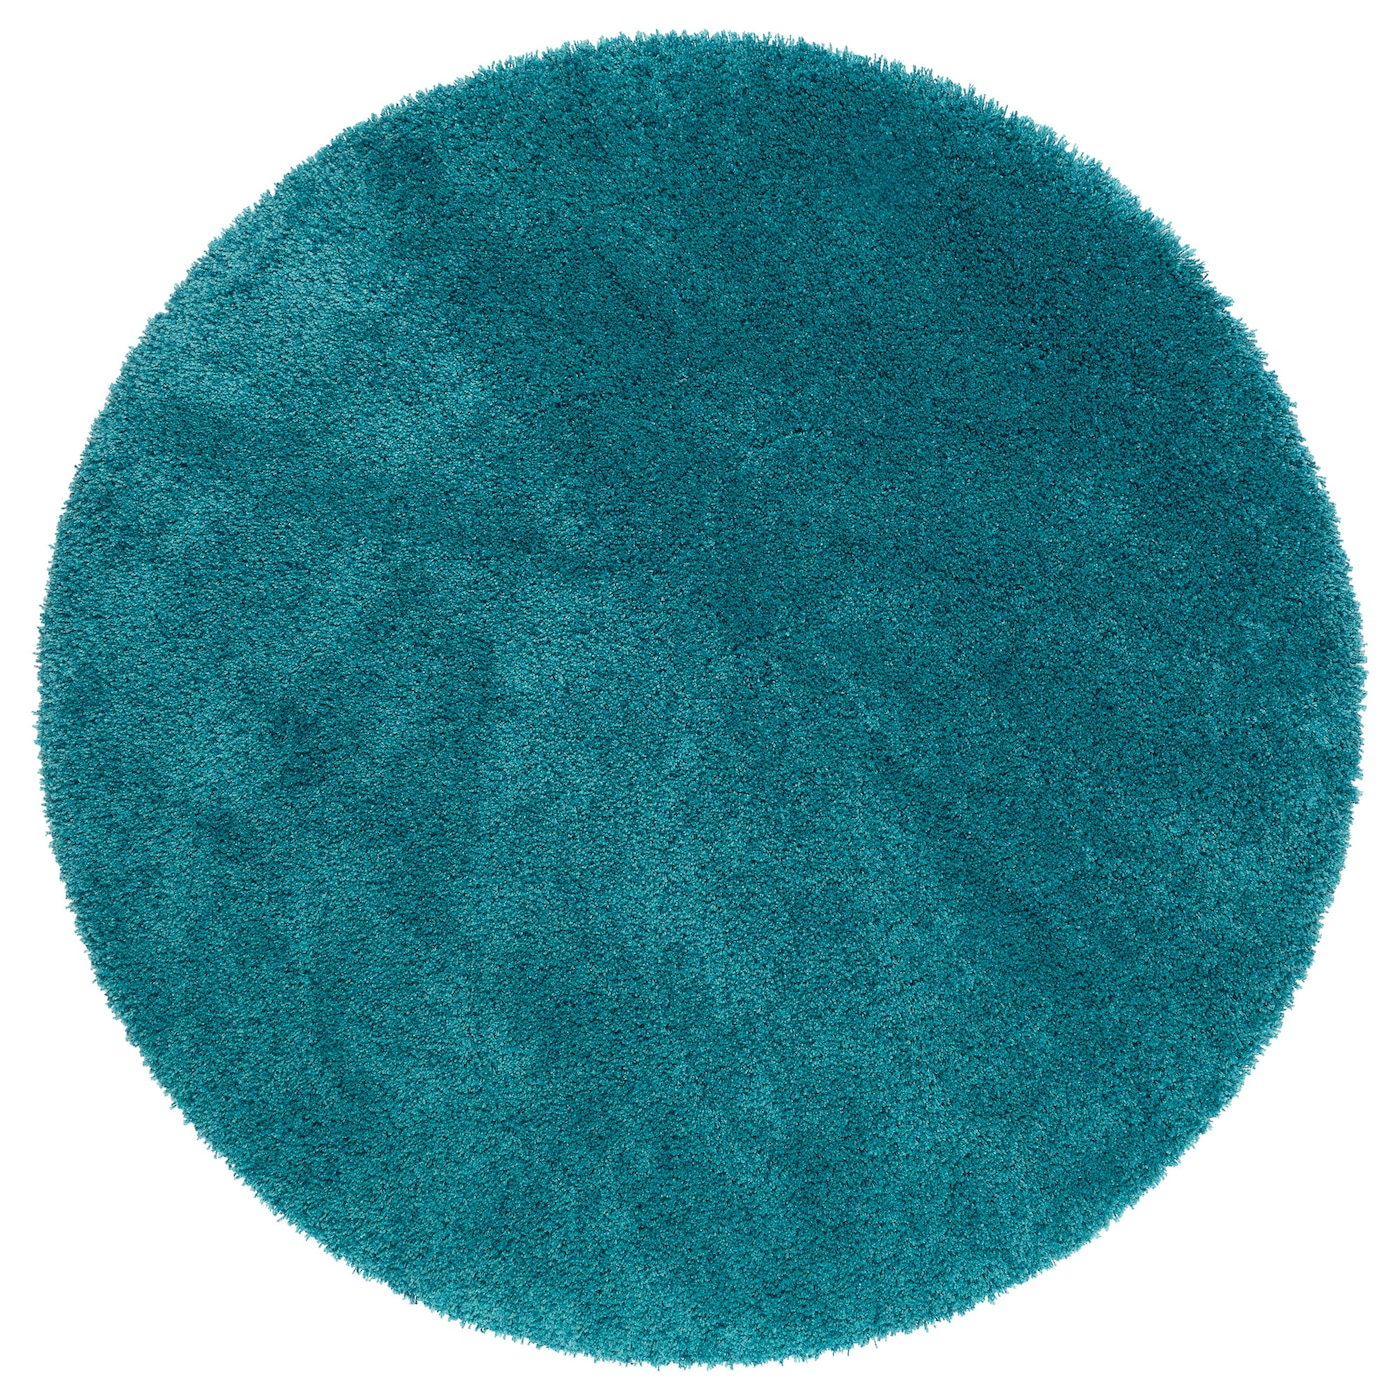 Dum rug high pile turquoise 130 cm ikea for Outdoor teppich ikea